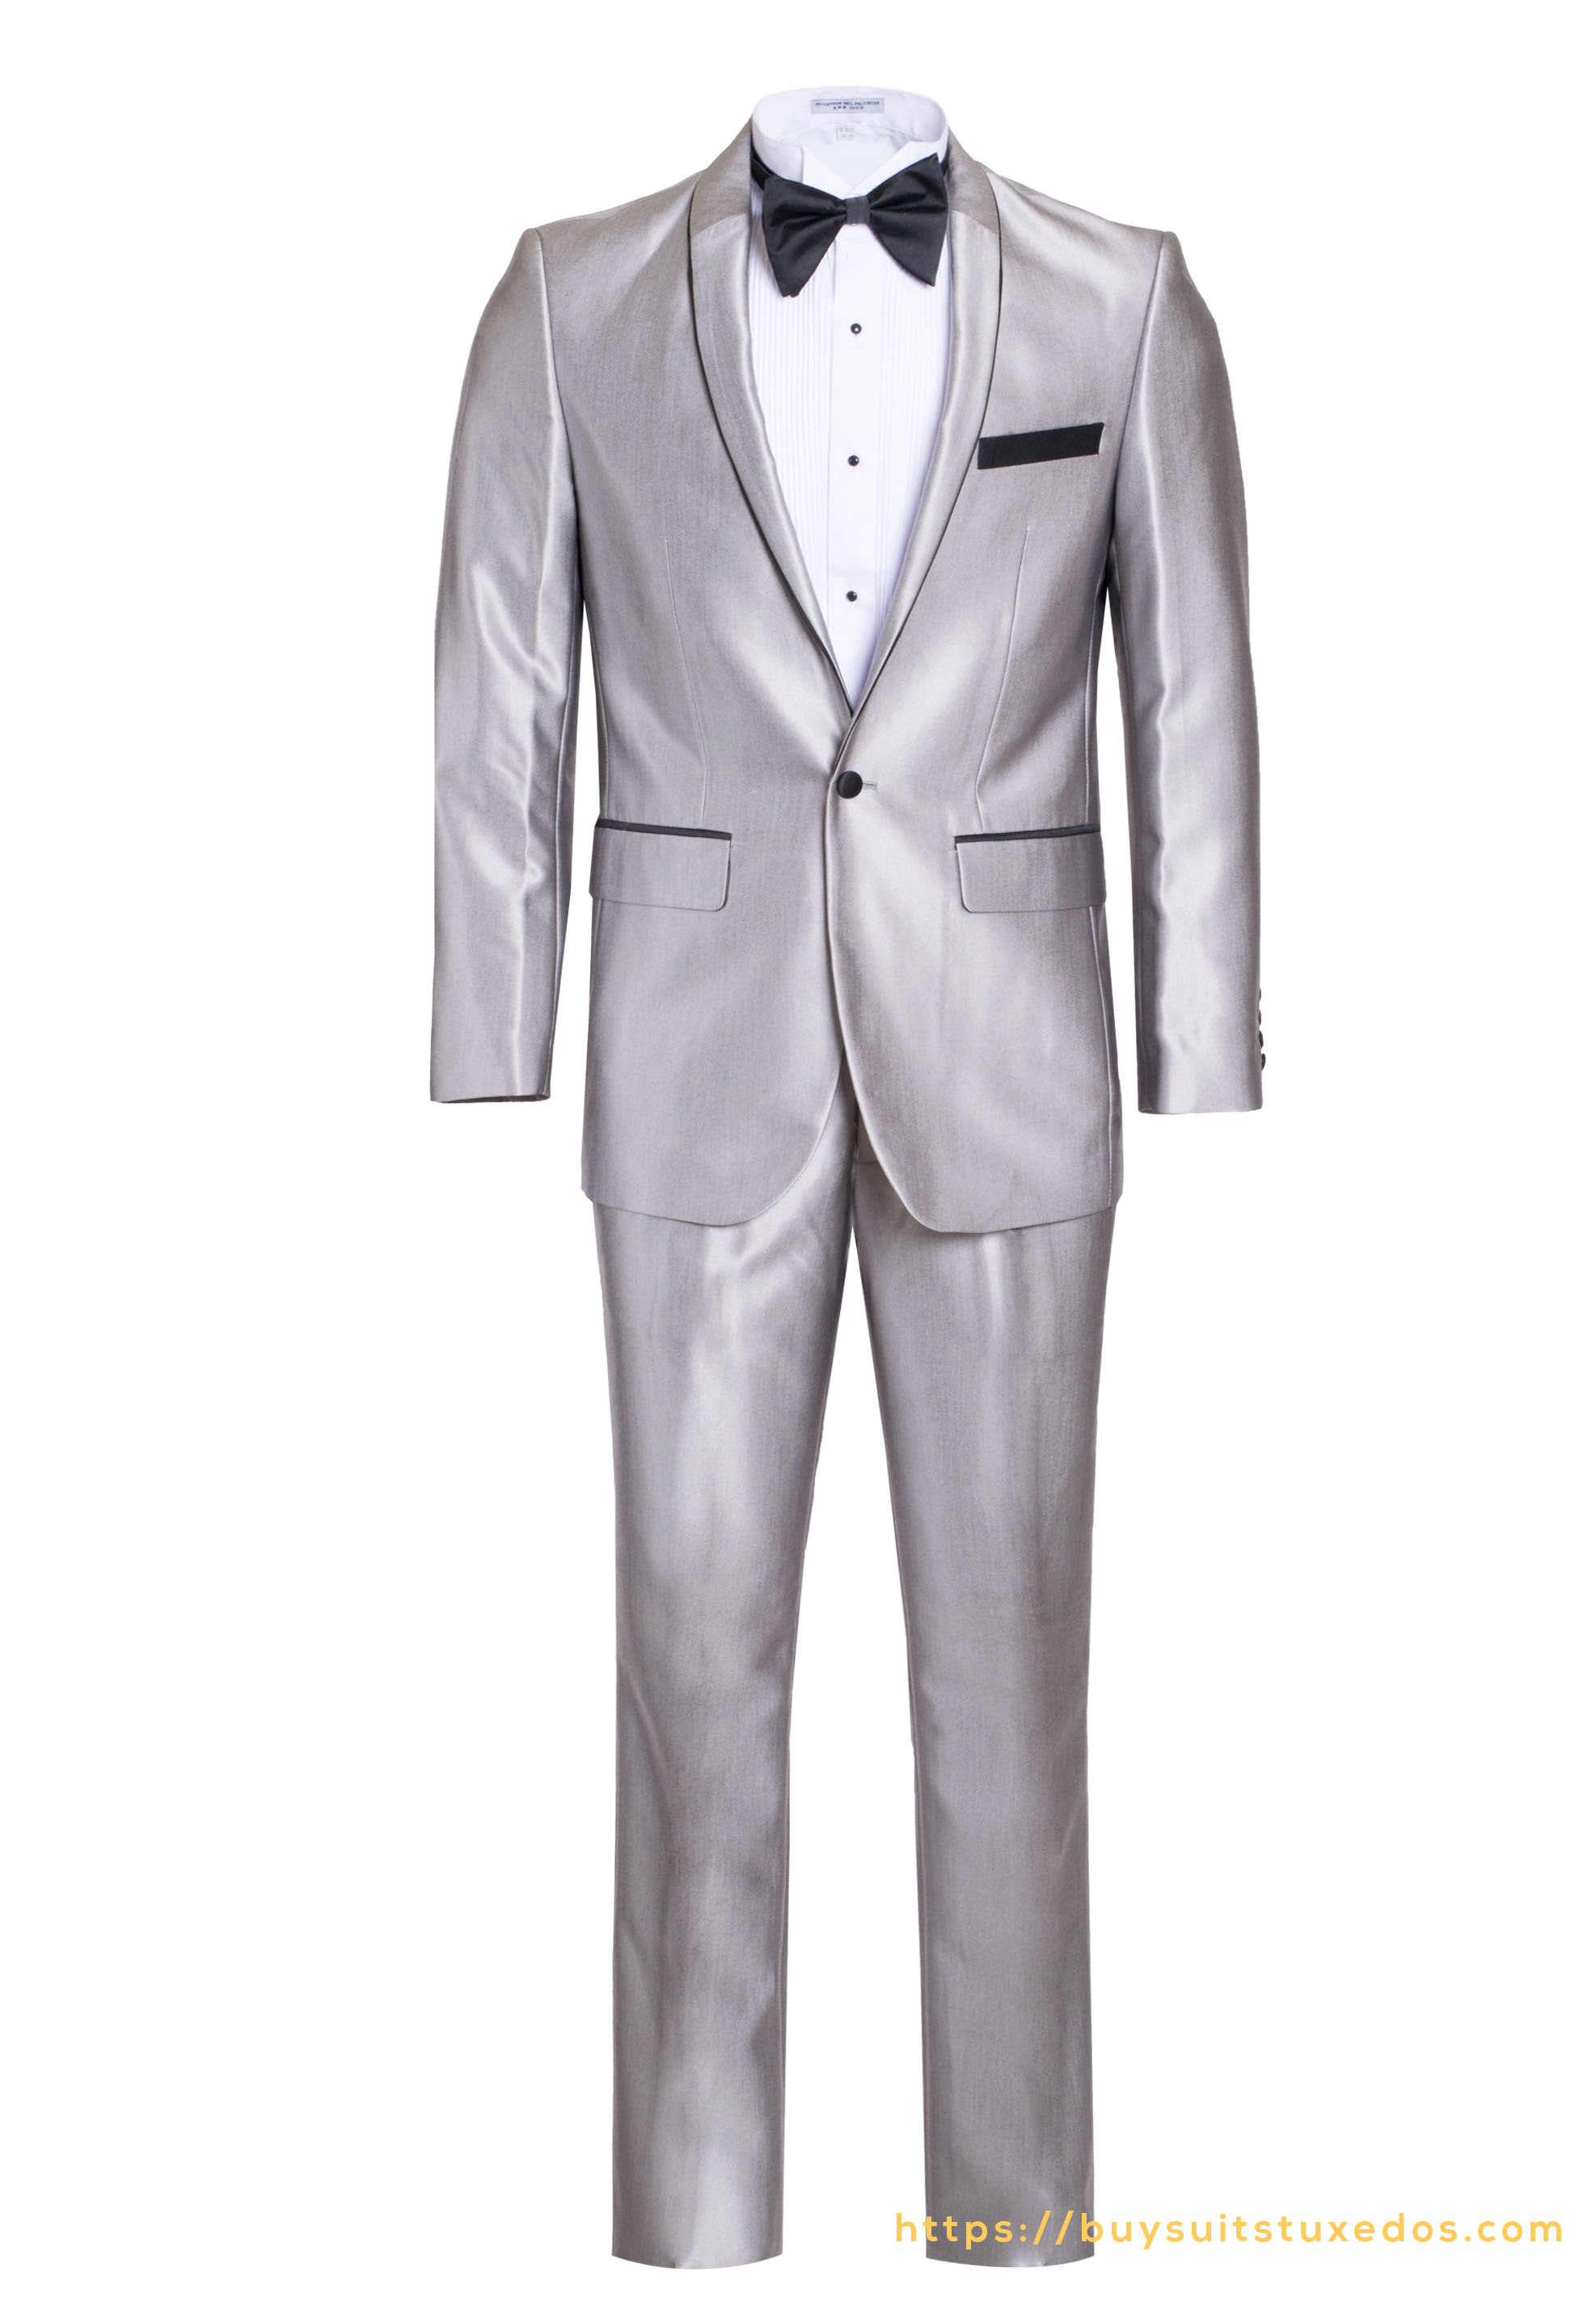 Elegant Men's Two Piece Slim Fit Shawl Tuxedo For All Occasions Includes A  Free Bow Tie color Silver With Black Trim Shiny - King Formal Wear